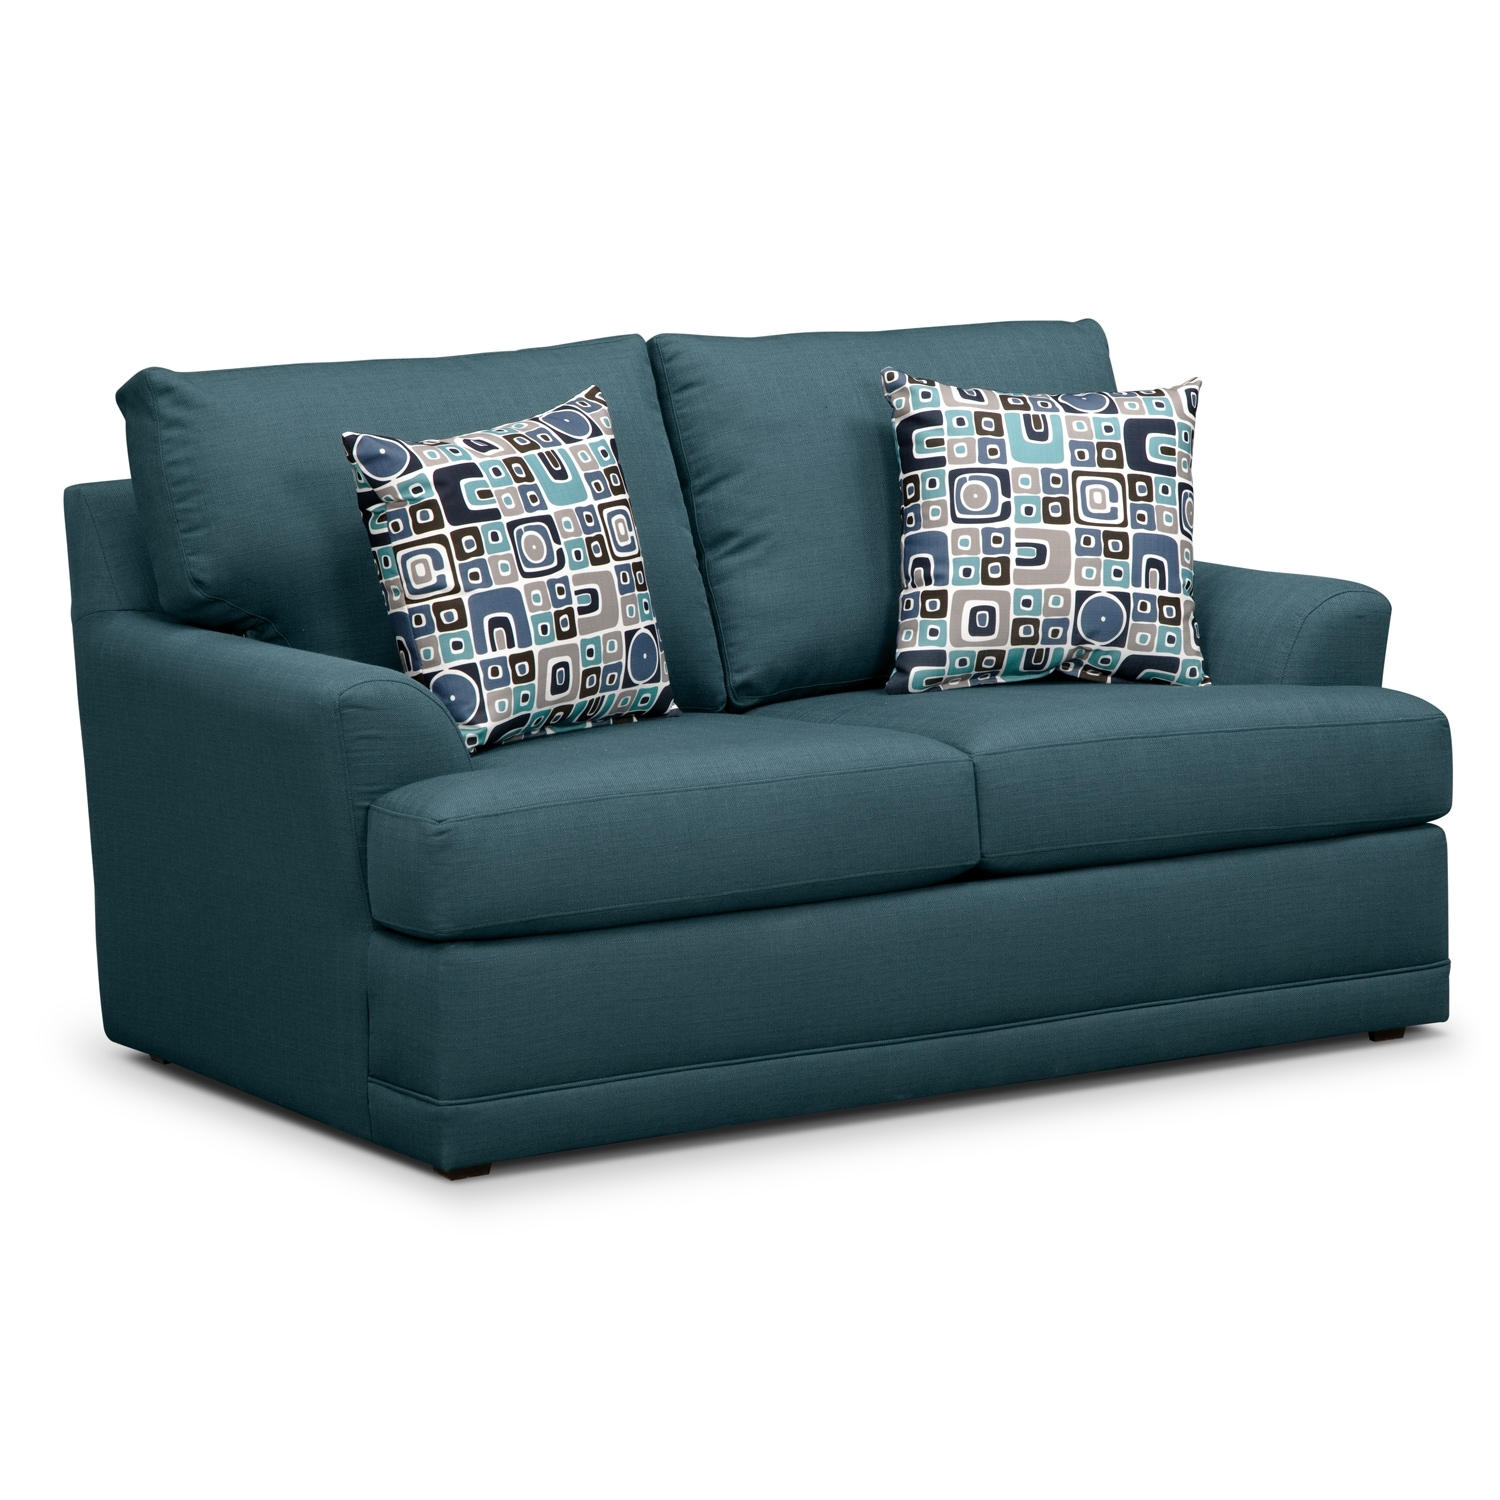 Living Room Furniture - Kismet Queen Memory Foam Sleeper Sofa and Loveseat Set - Teal